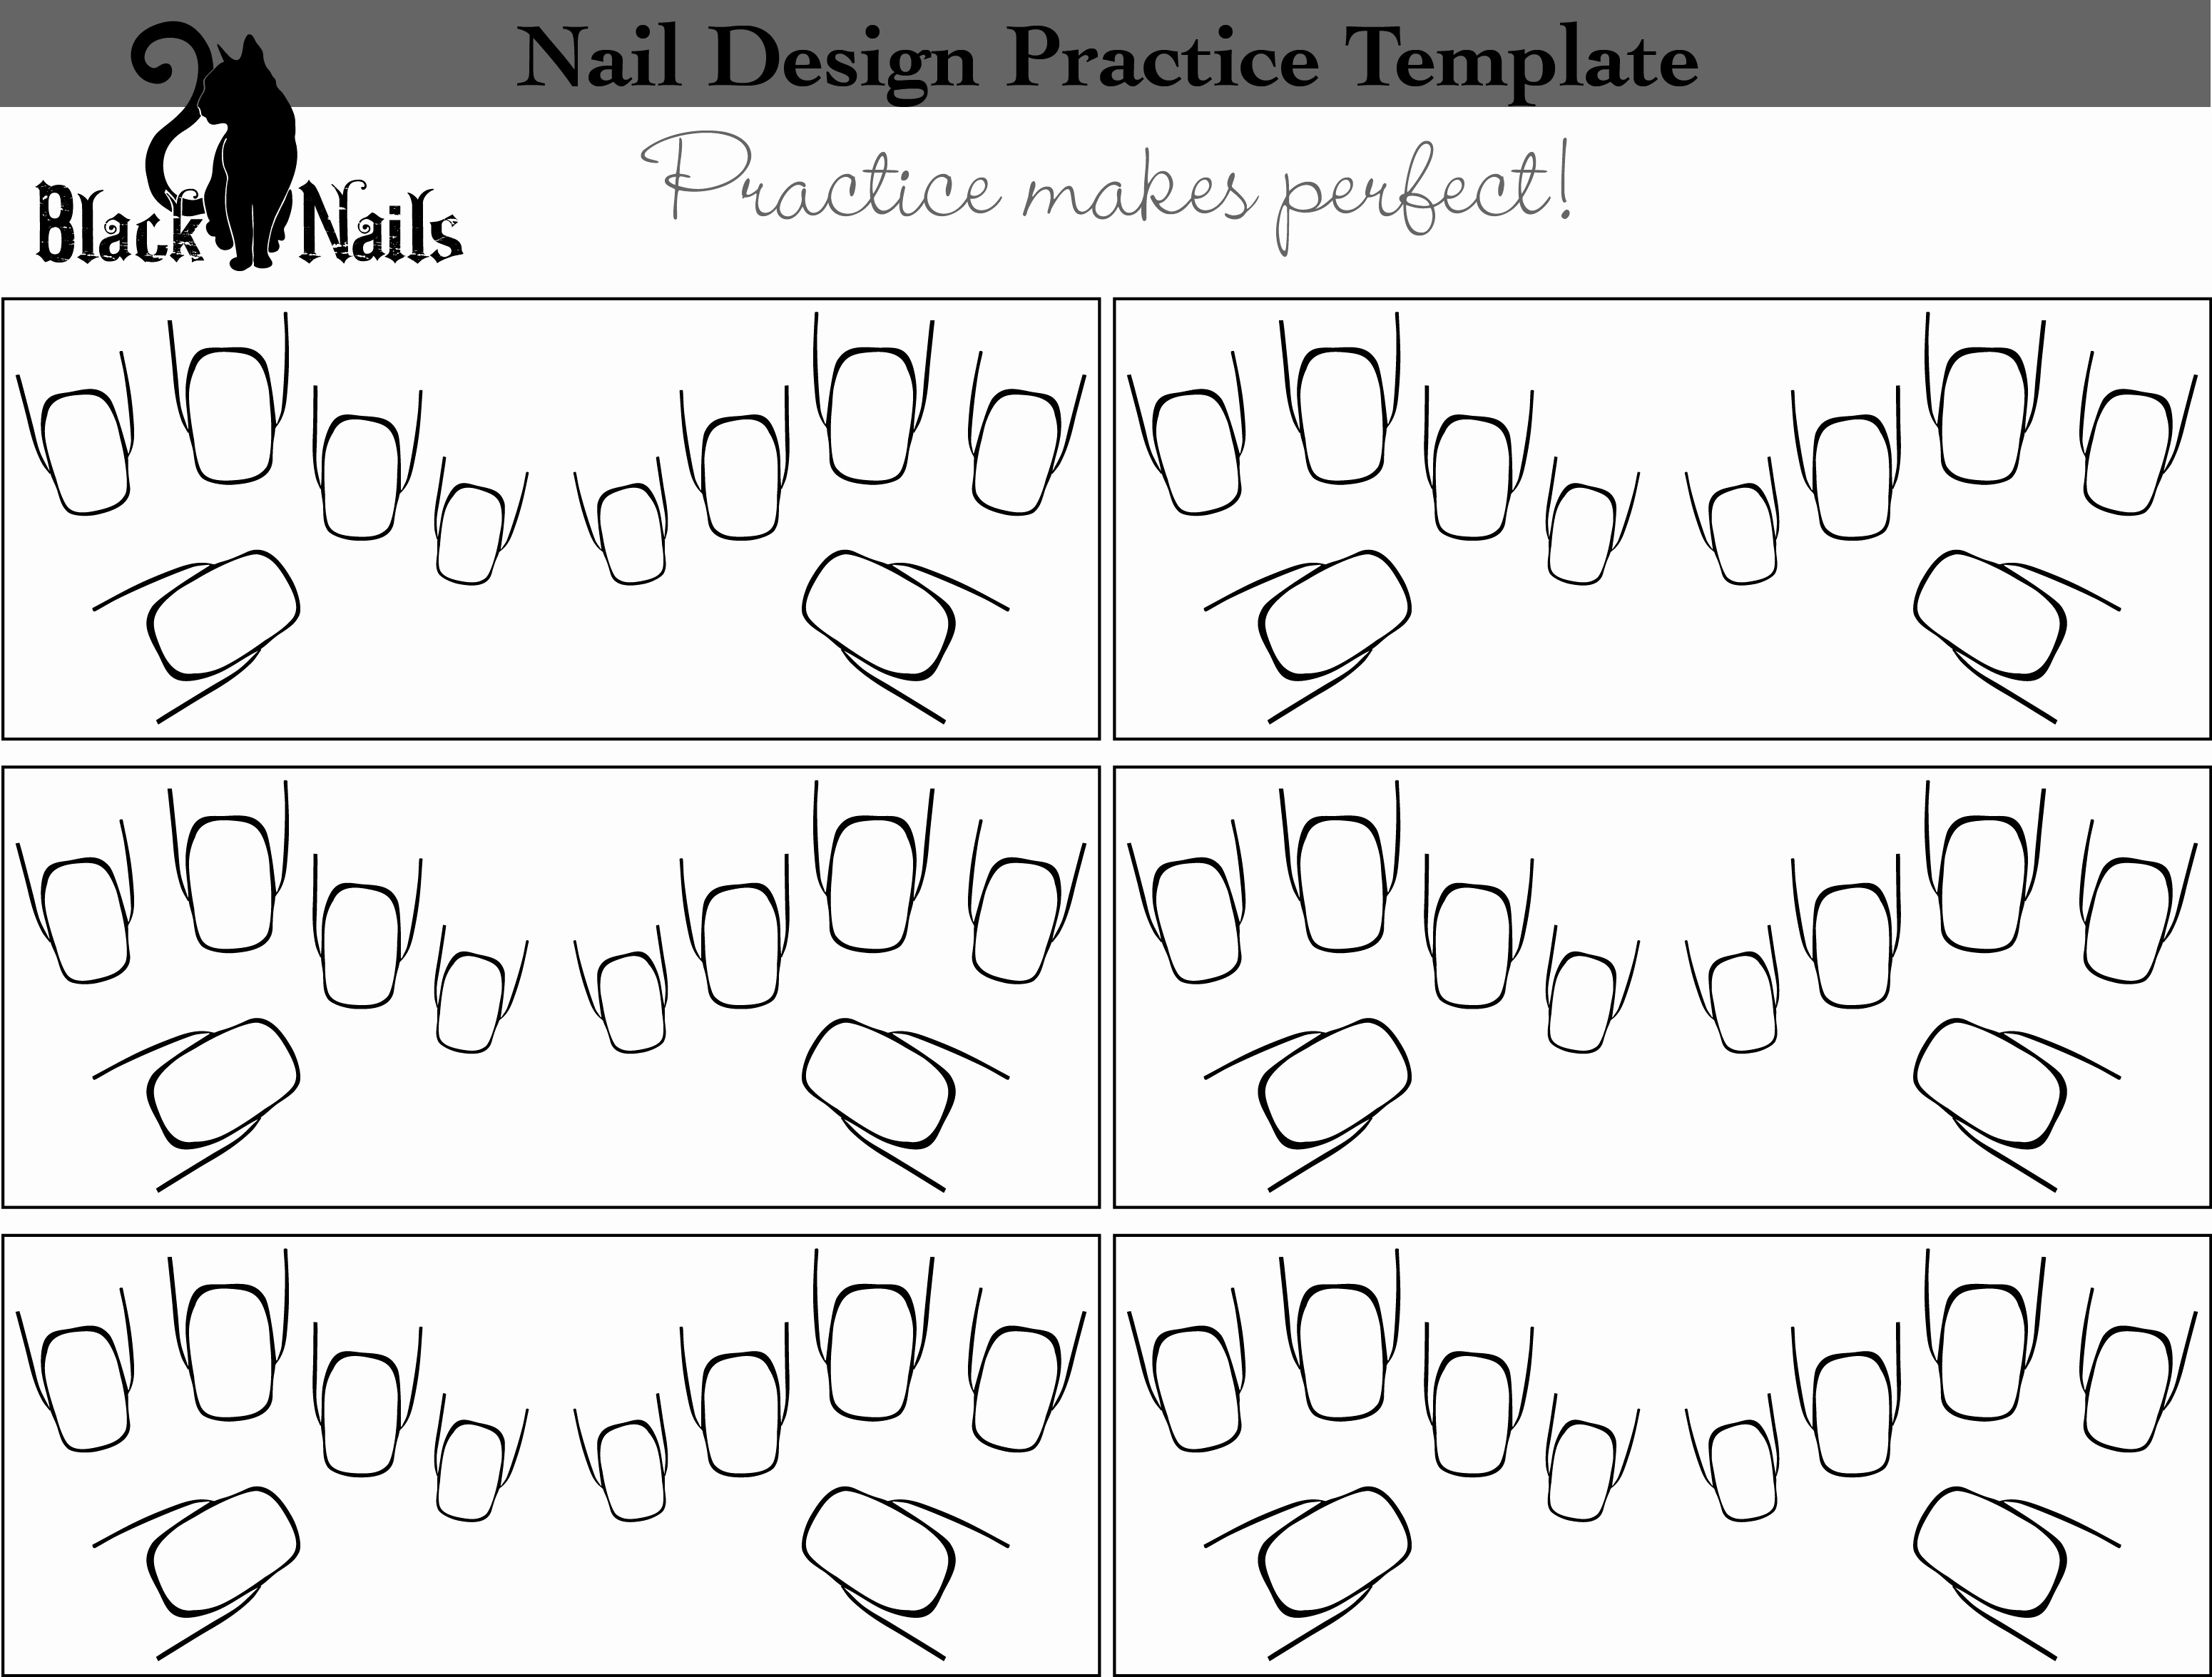 Printable Nail Art Templates Awesome Nail Art Design Practice Sheet Full Hand Versions